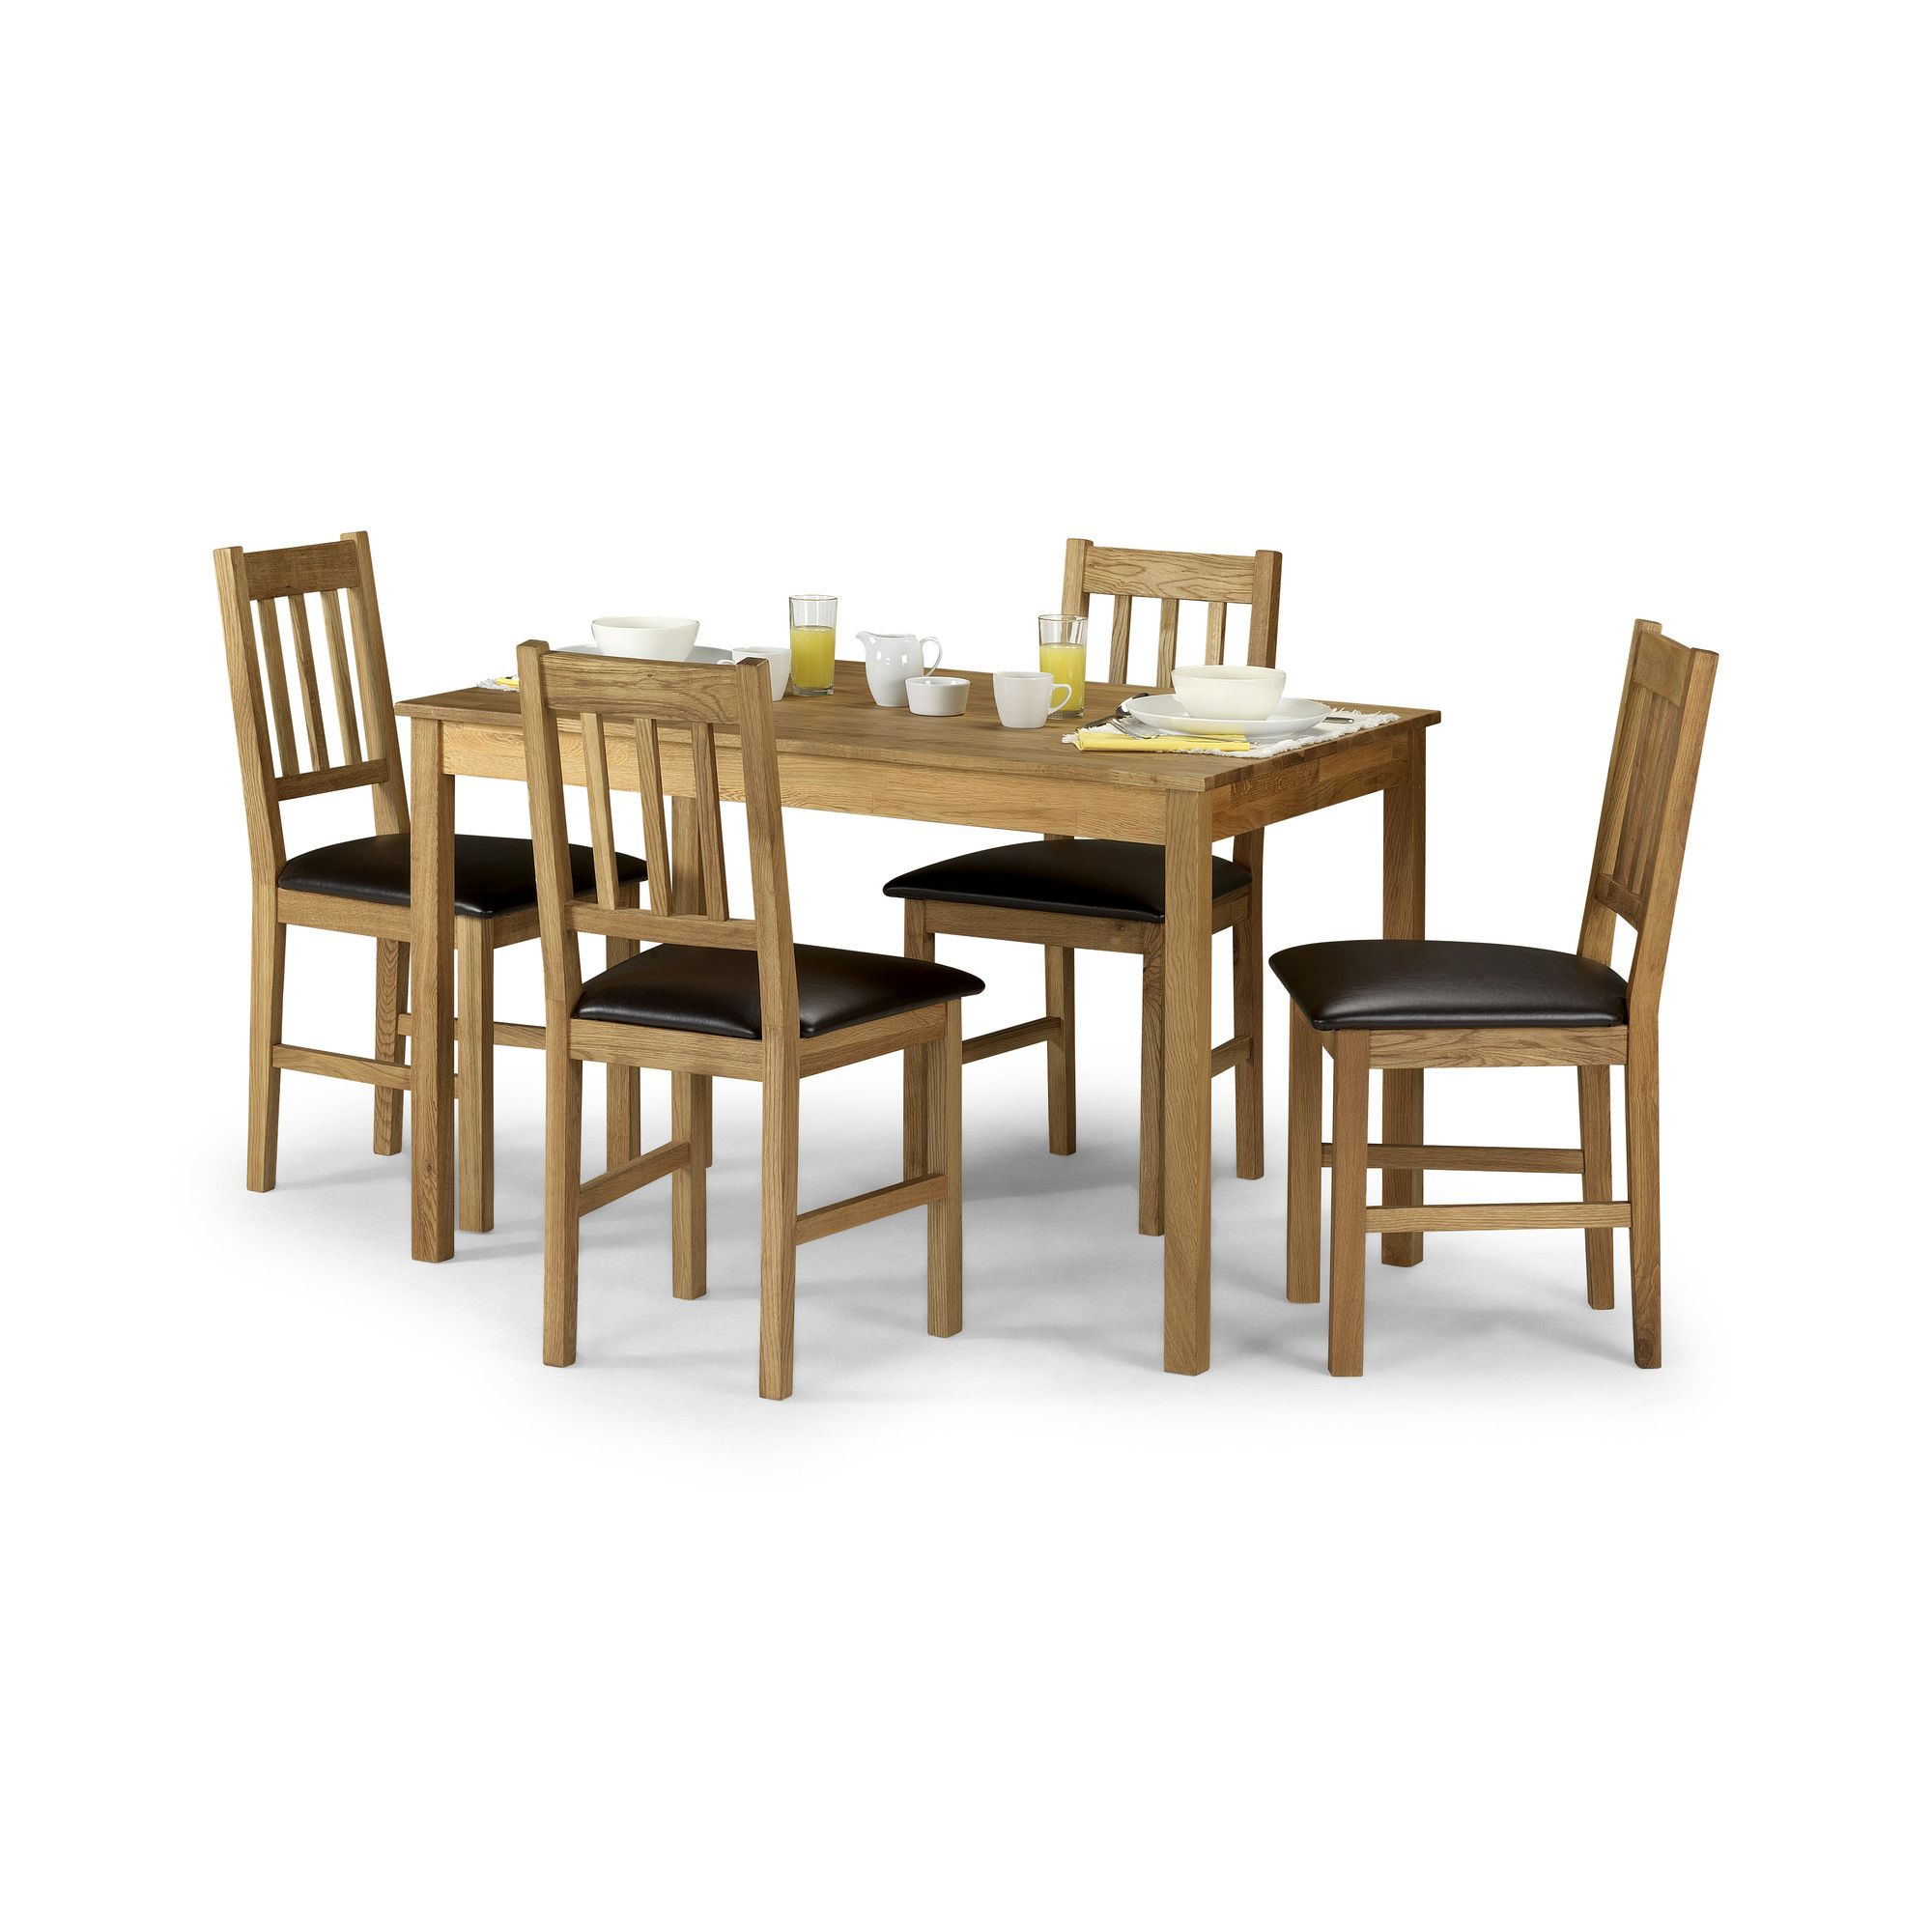 Tesco direct julian bowen coxmoor 4 chair dining set in - American history x dinner table scene ...